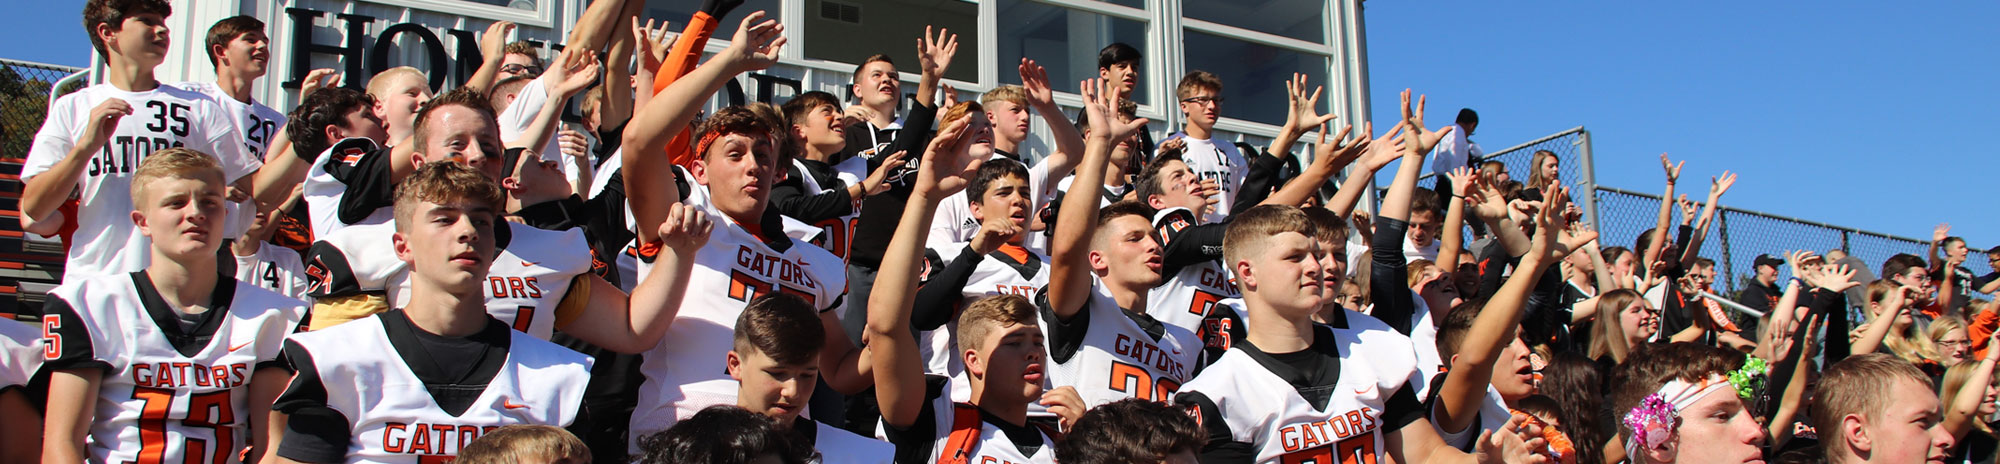 Port Allegany football players cheering in the stands